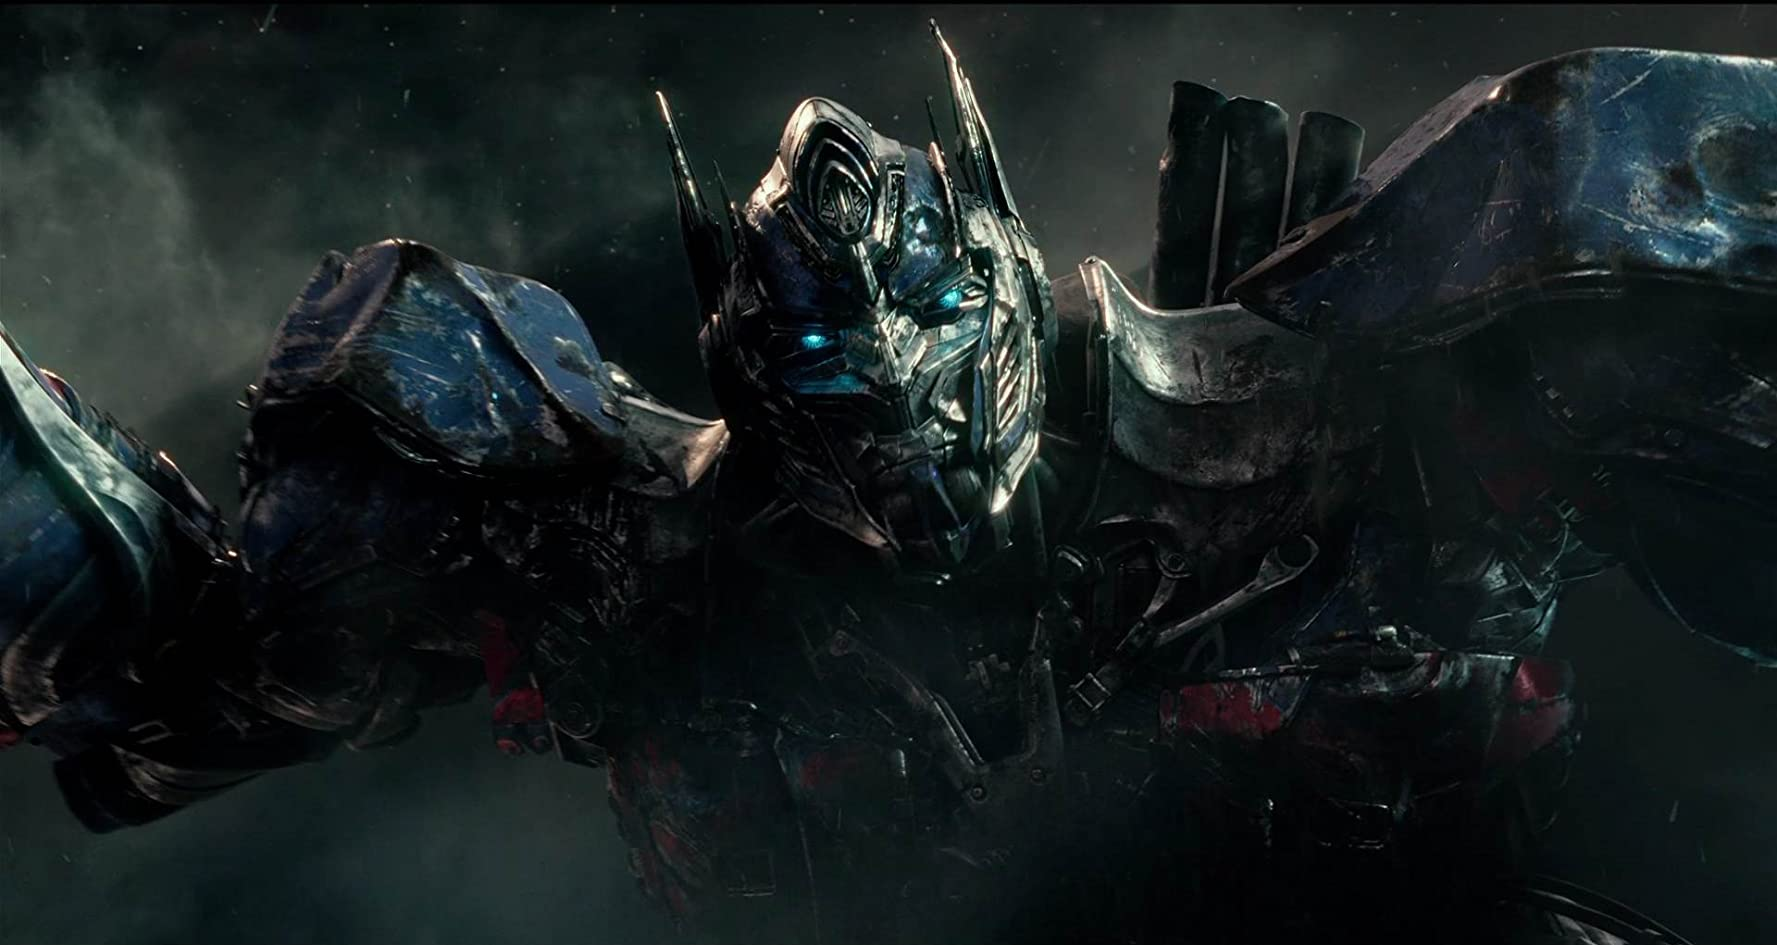 Peter Cullen in Transformers: The Last Knight (2017)